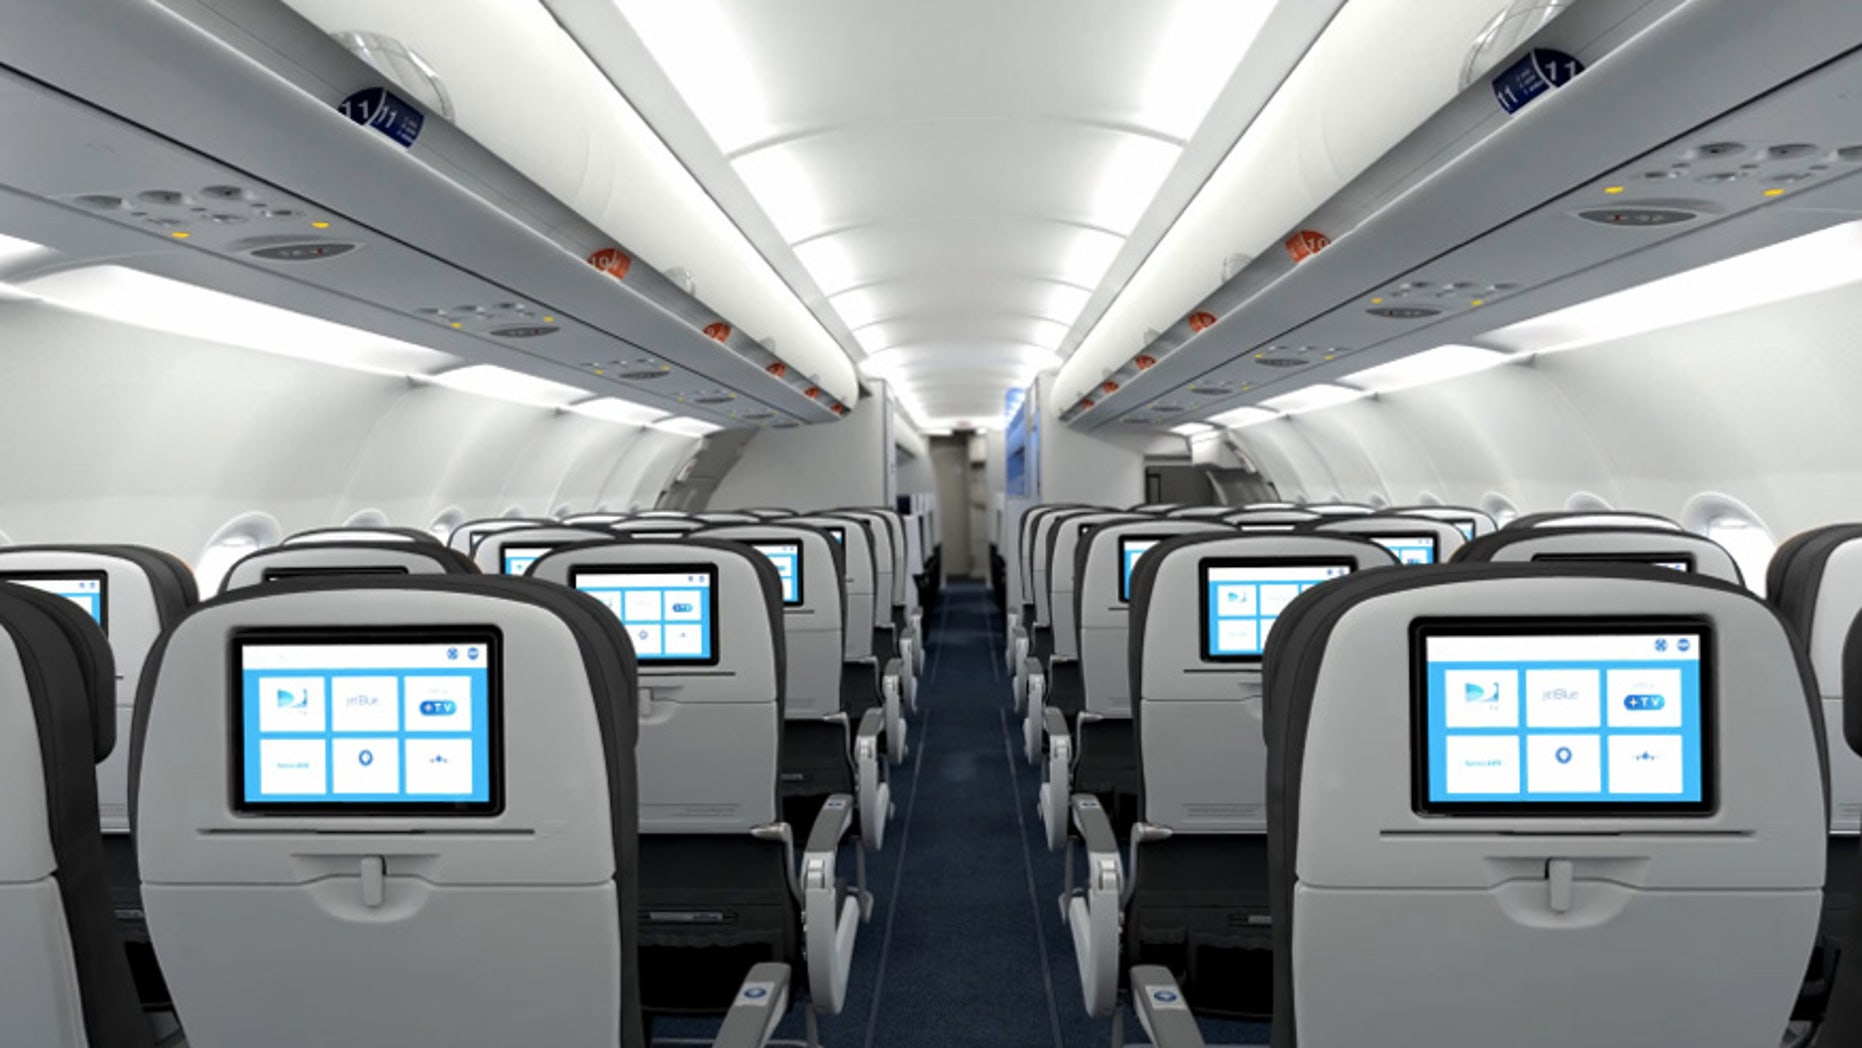 JetBlue is now offering educational lectures as part of its rotating inflight entertainment package.